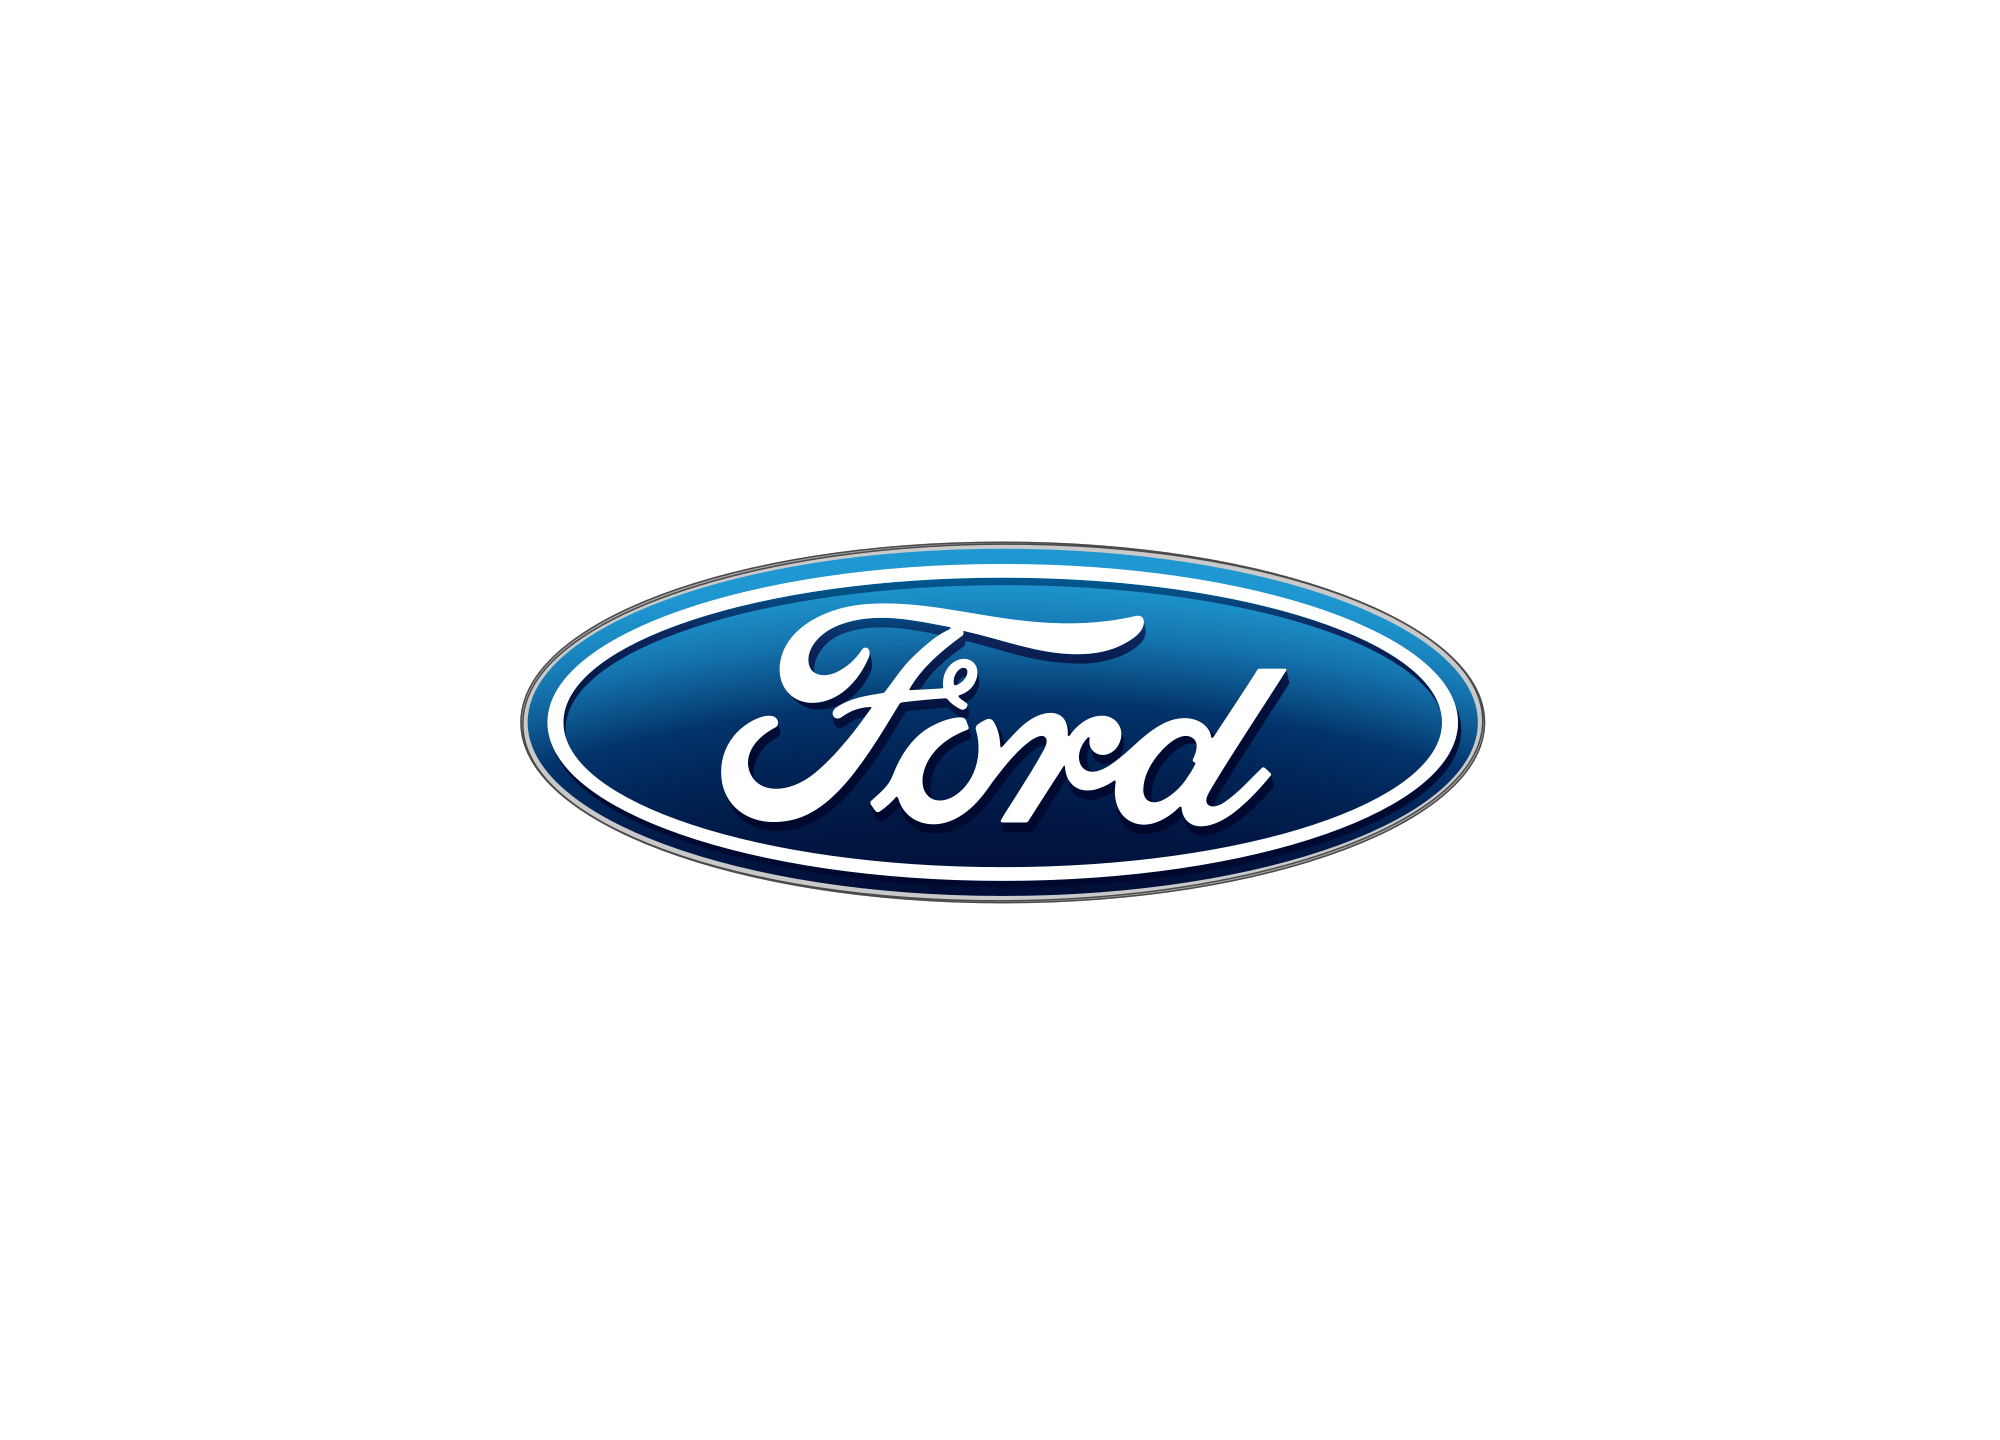 free ford logo dual 2 ohm sub wiring diagram new motor company engine image for